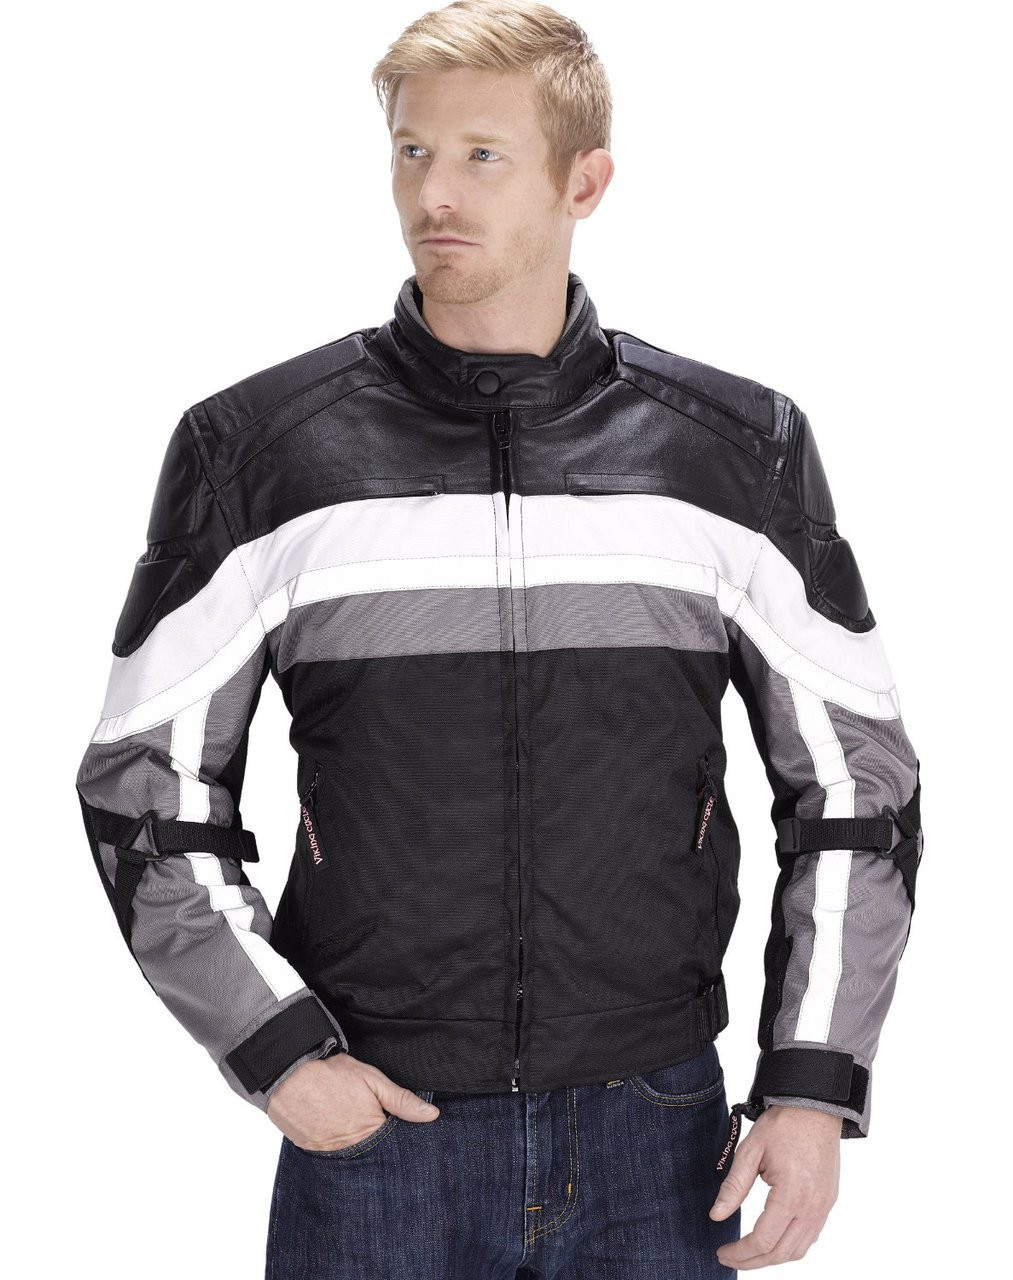 VikingCycle Hammer Motorcycle Jacket for Men